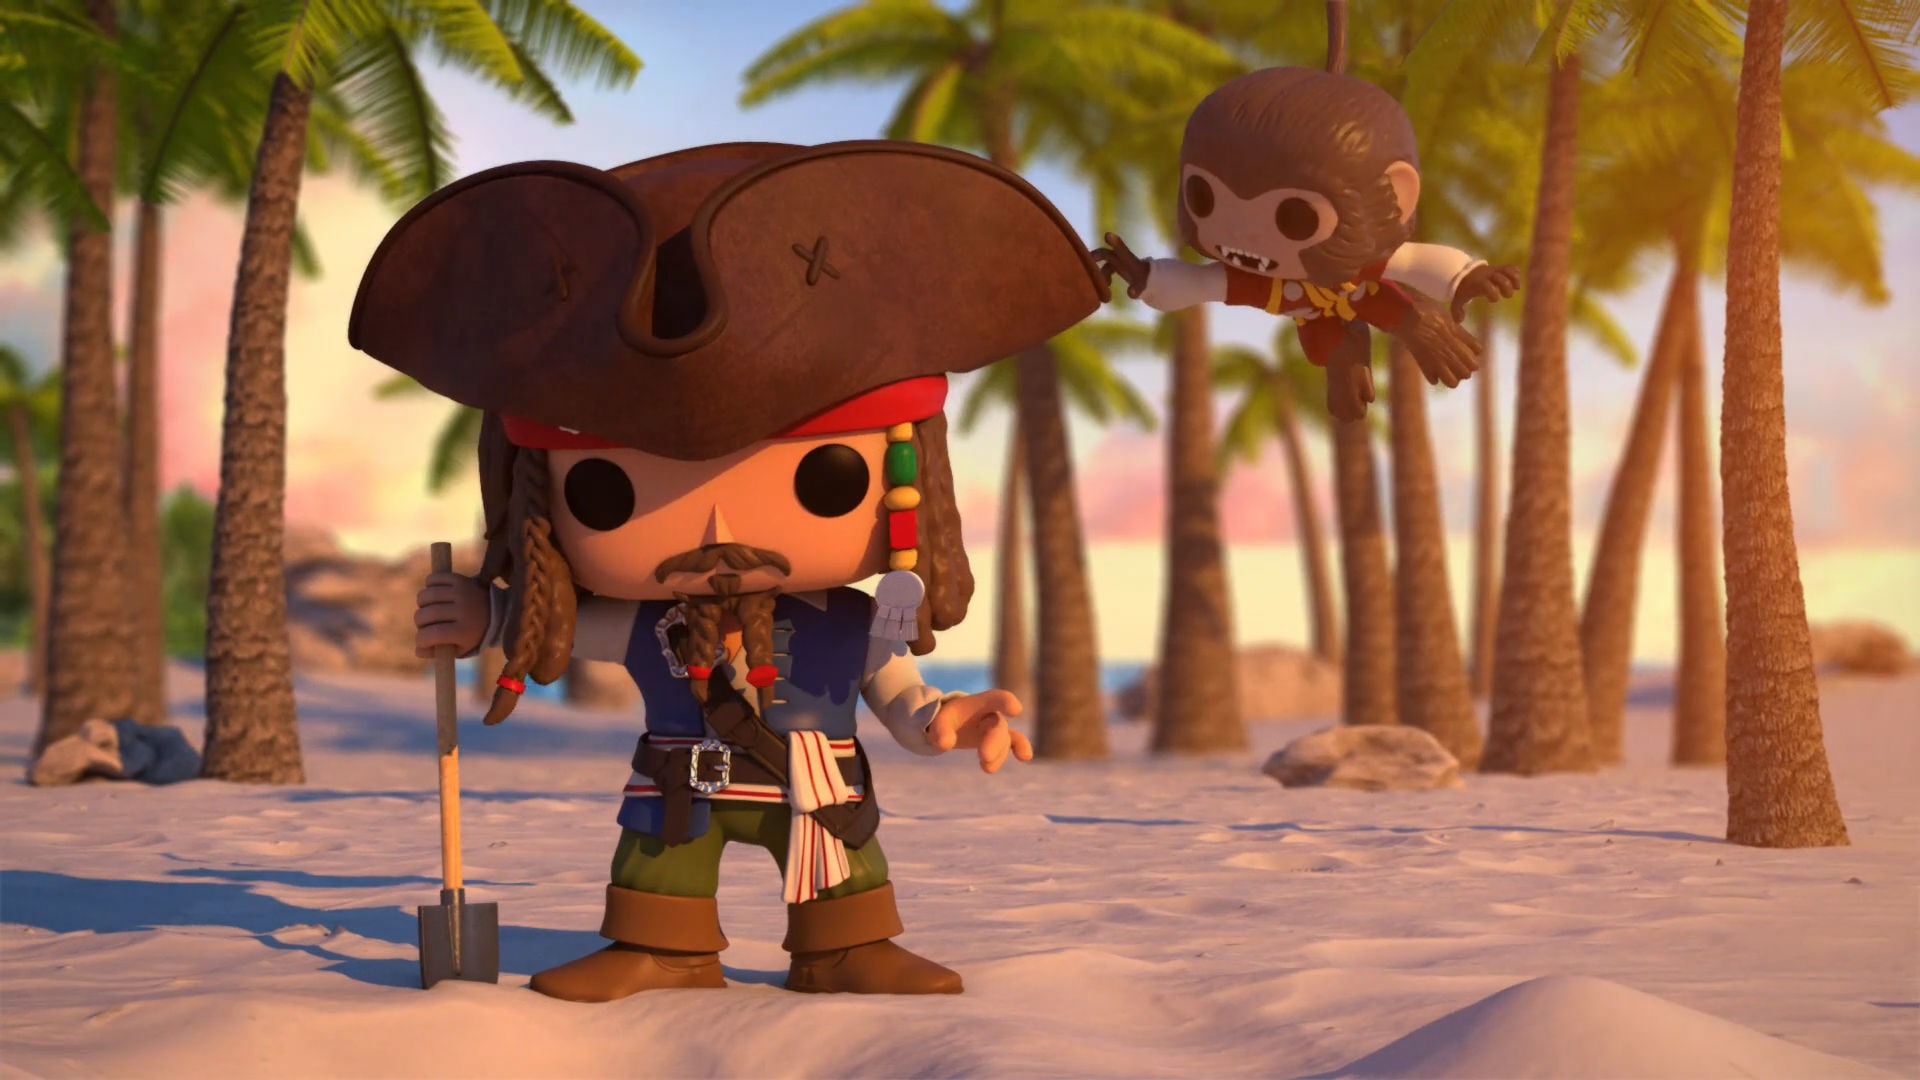 Watch Captain Jack Sparrow search for pirate booty and Disney Treasures!